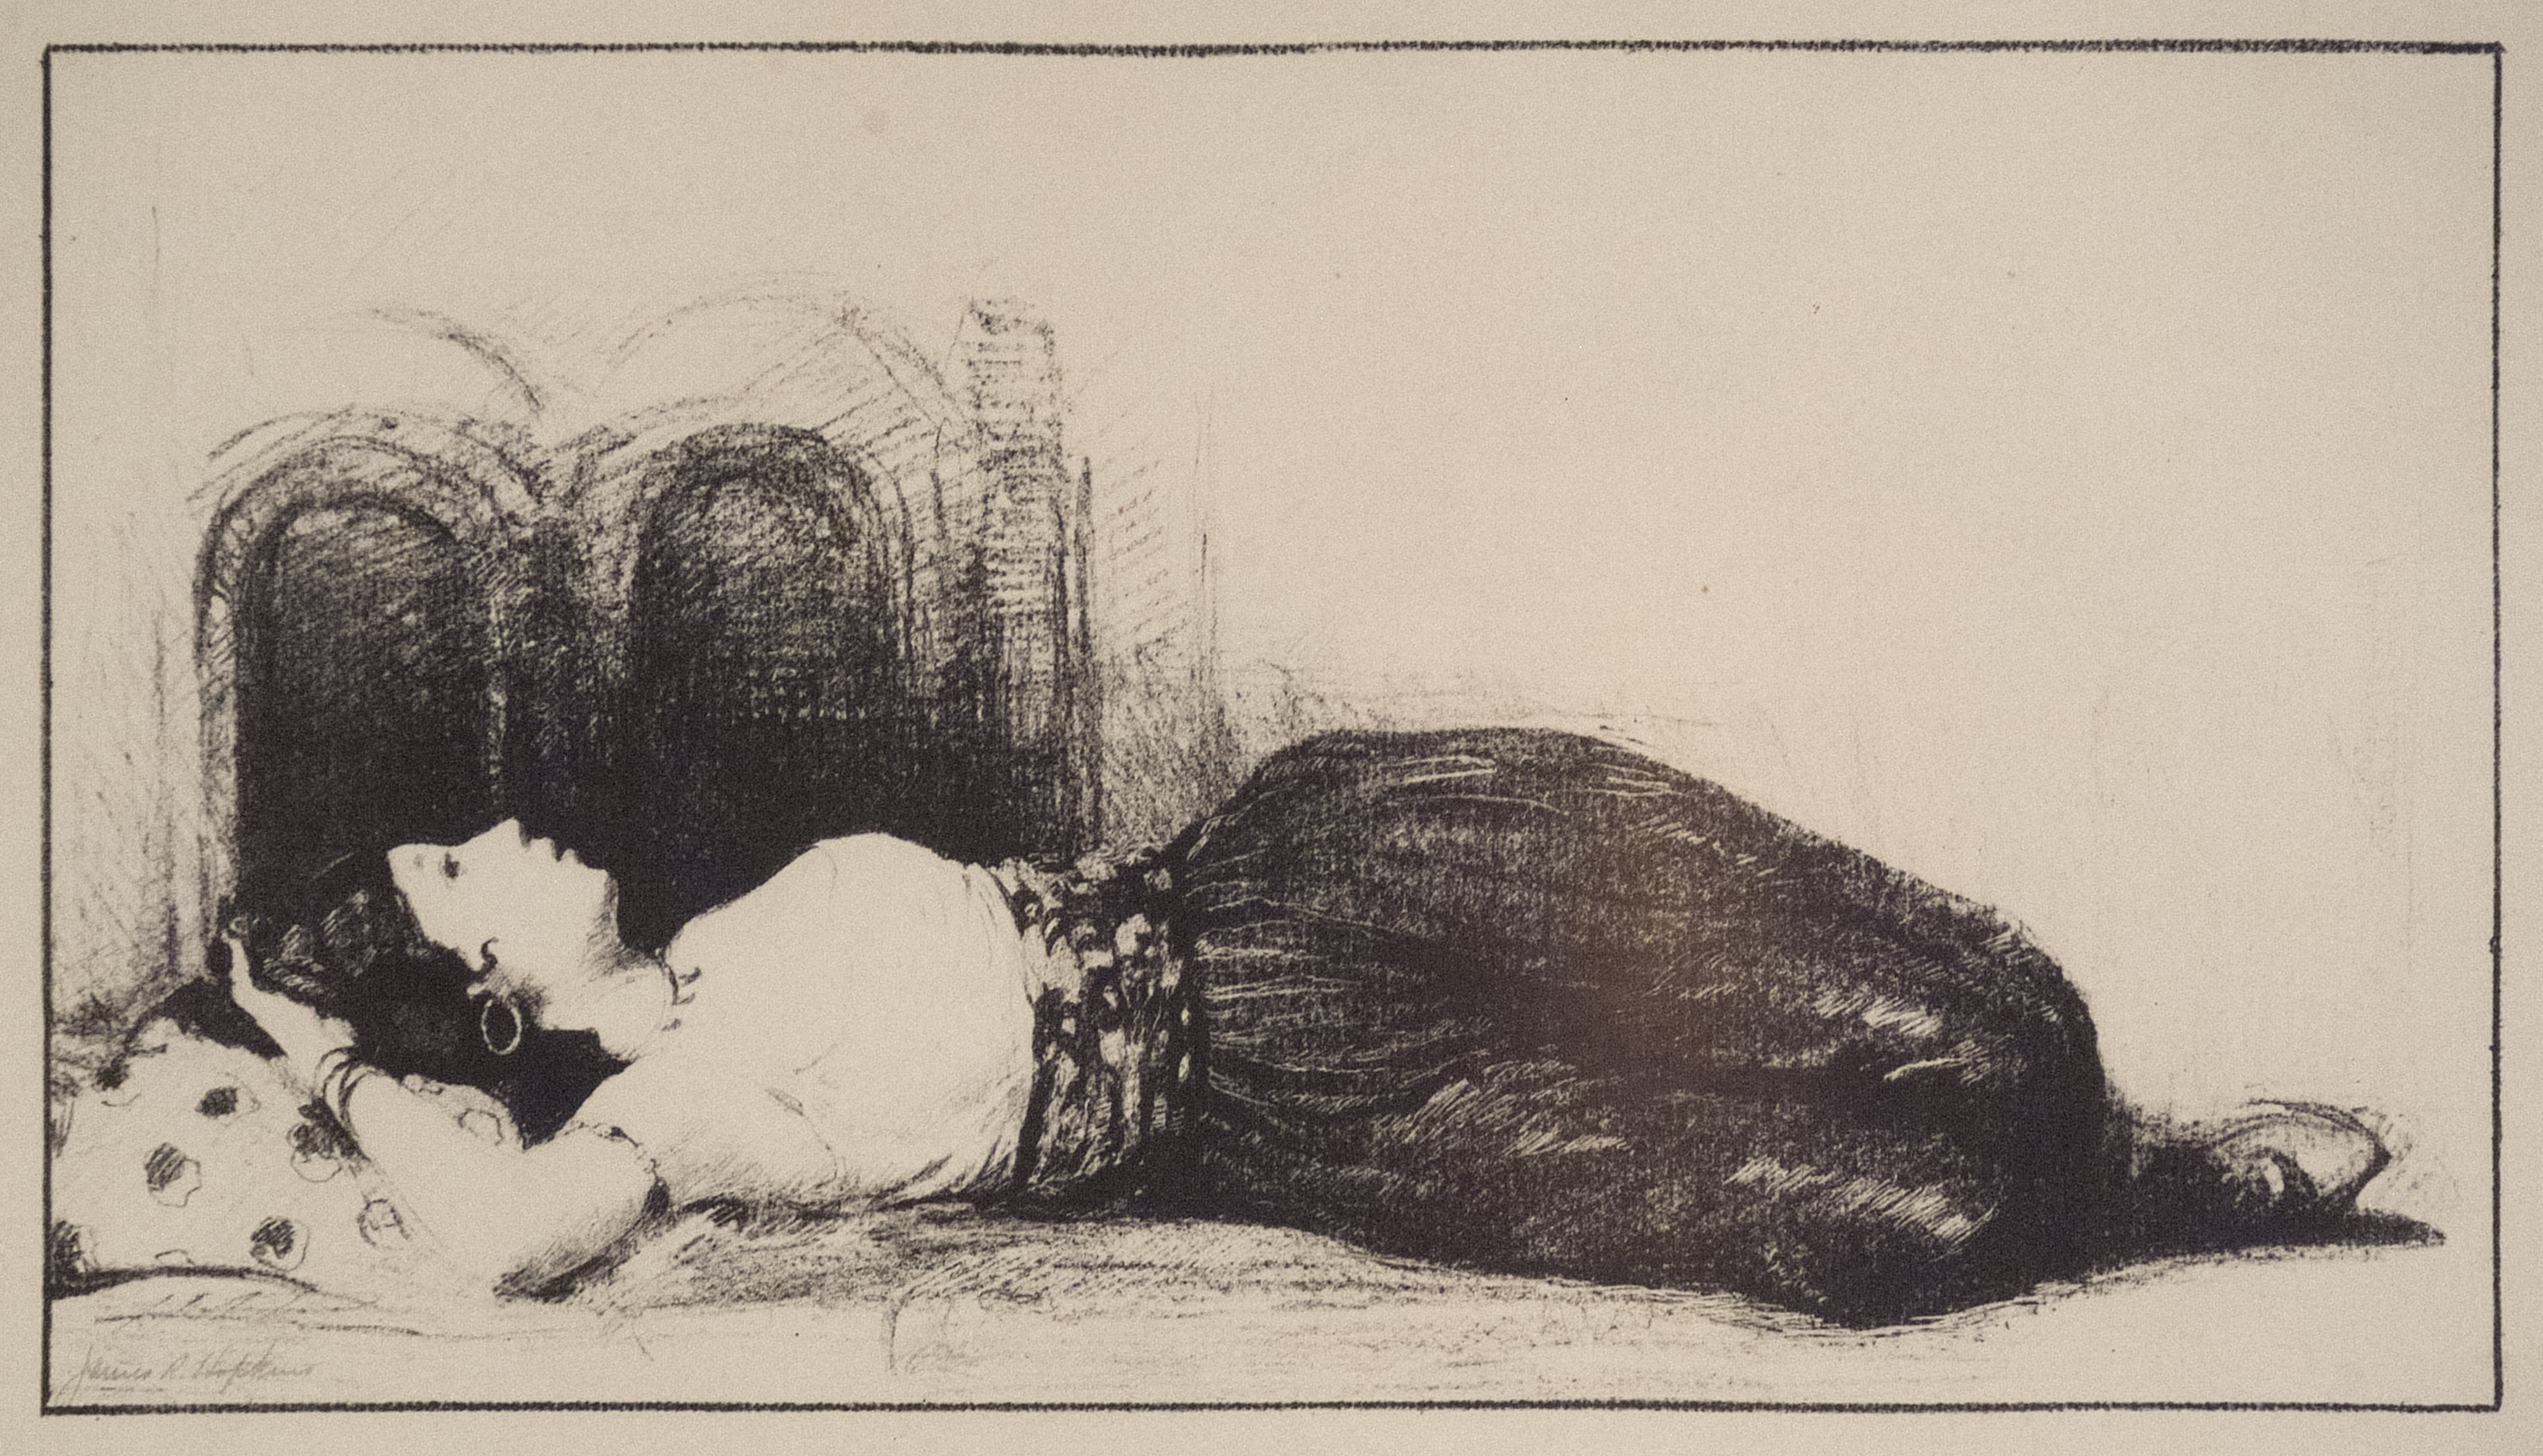 James R. Hopkins | RECLINING FEMALE IN FRONT OF DOUBLE ARCHES | lithograph | 7-1/2 x 613-1/4"